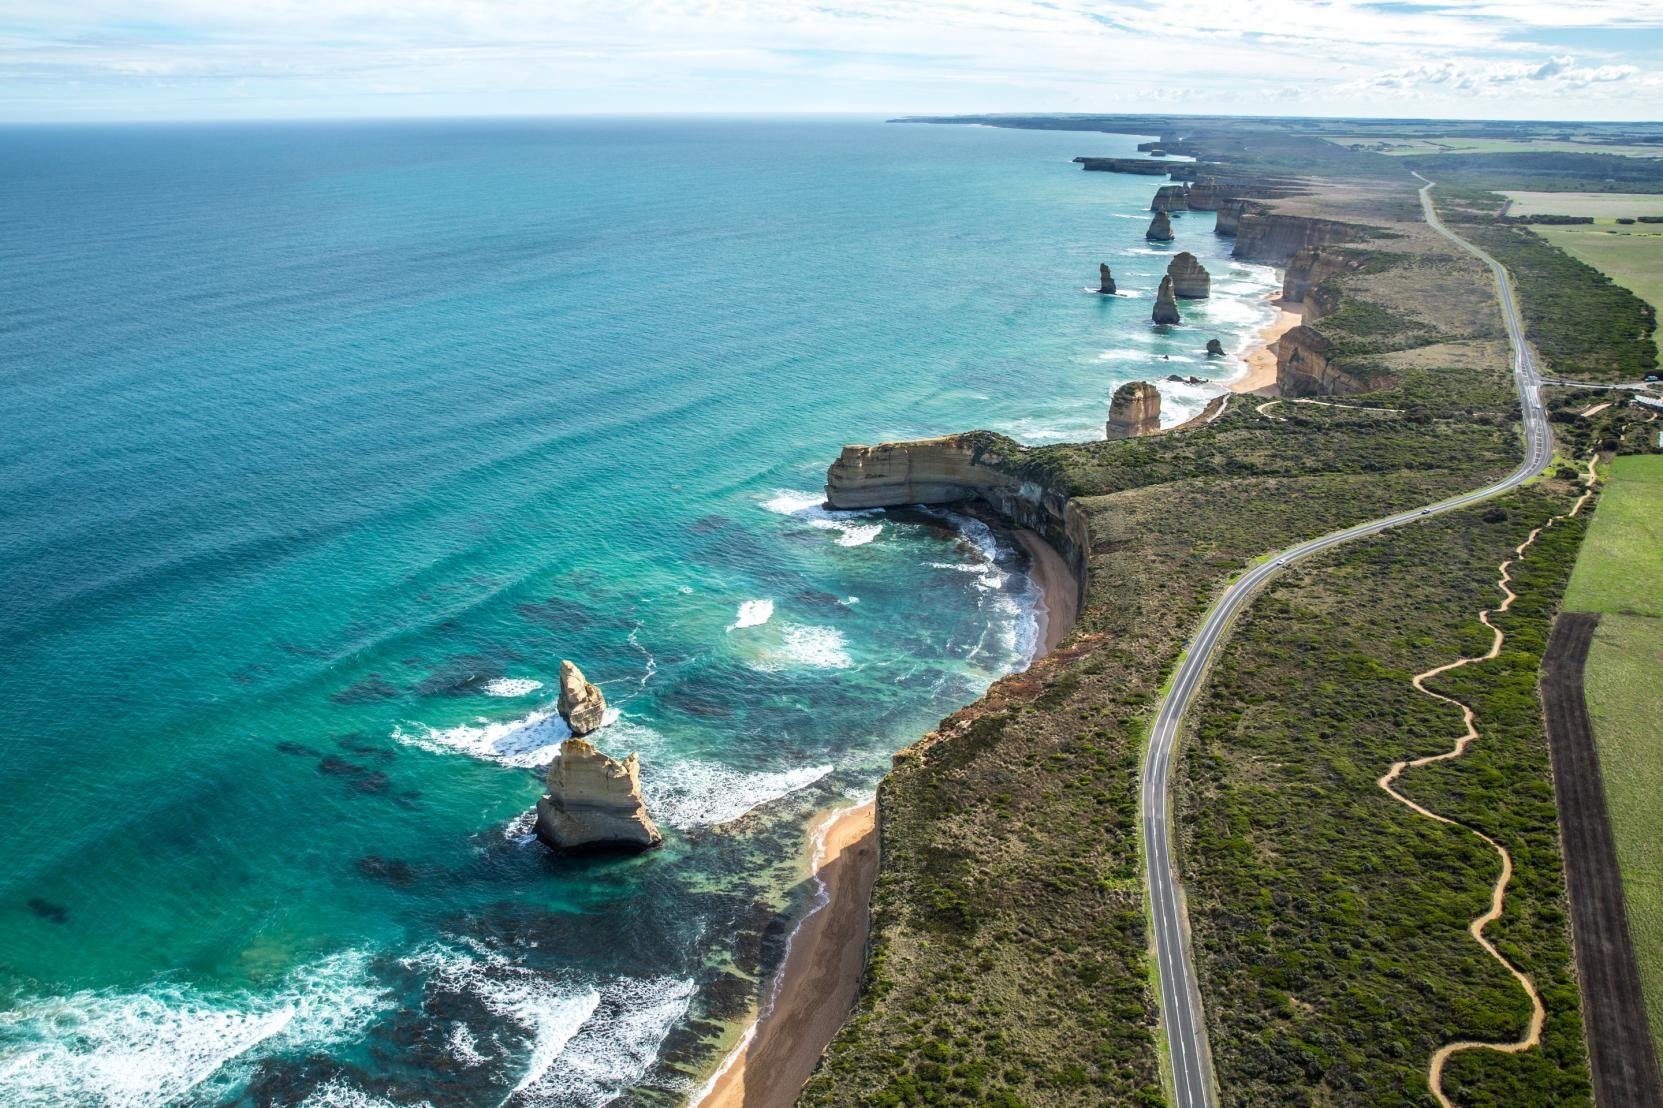 Melbourne & The Great Ocean Road | The Great Ocean Road